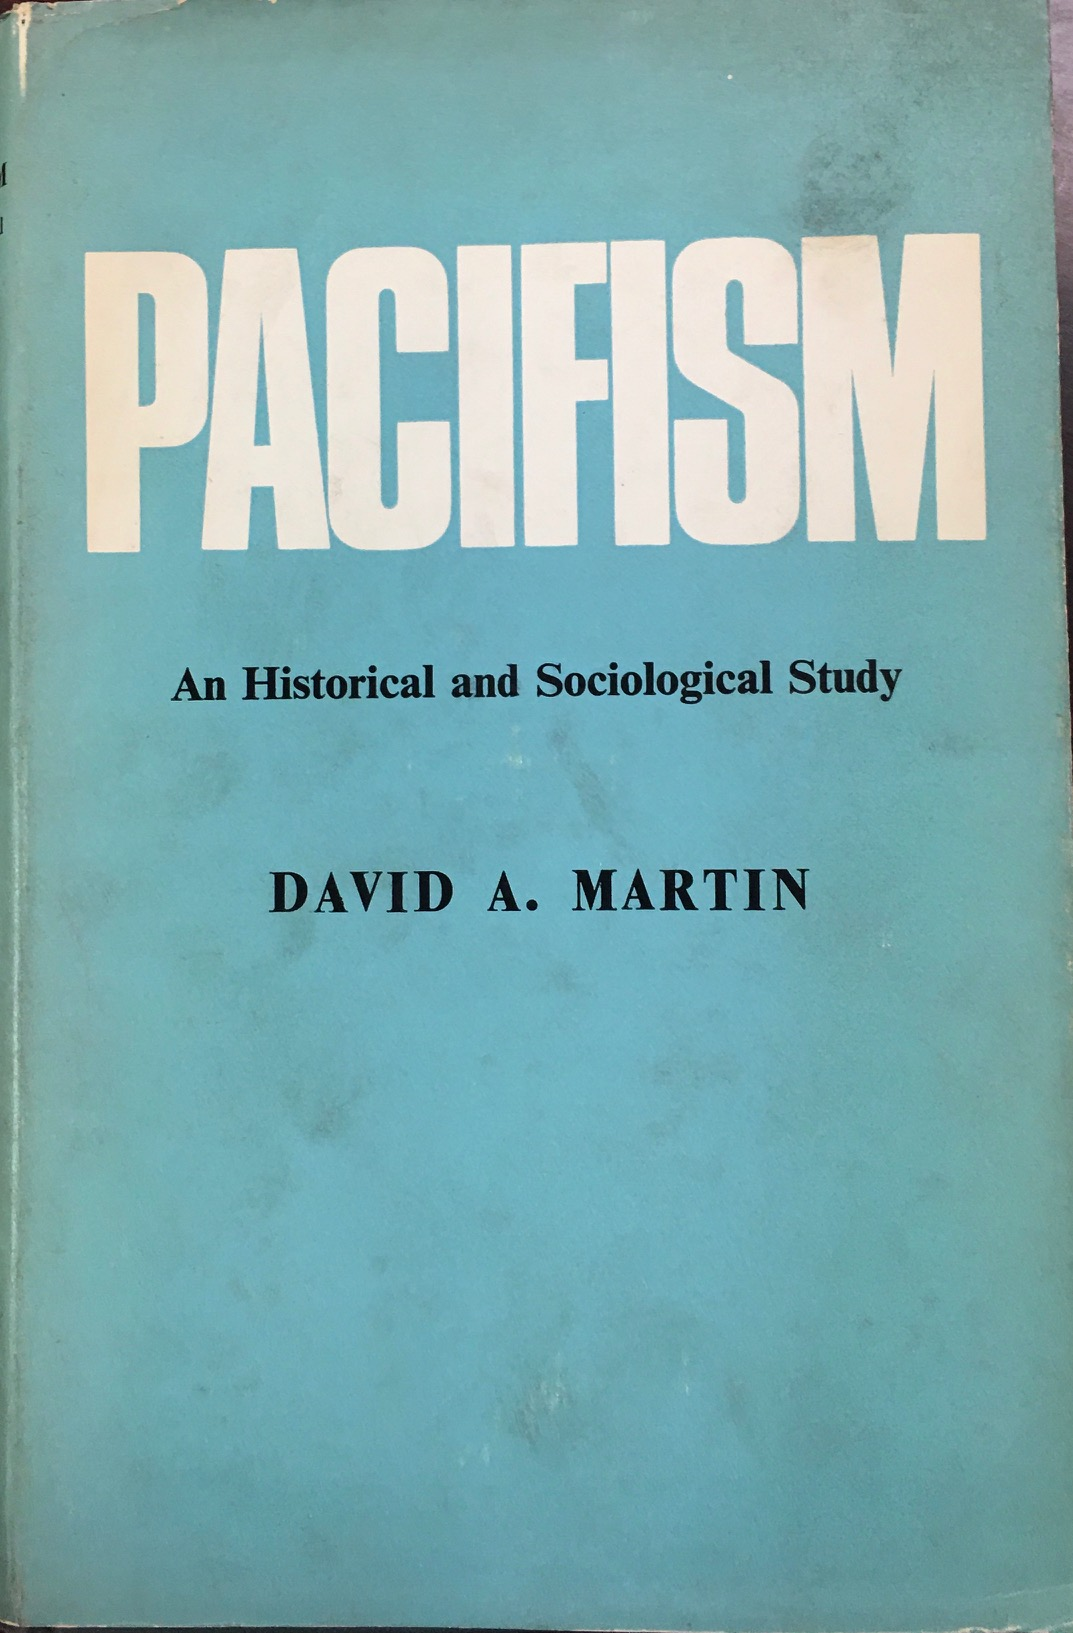 Image for Pacifism: An Historical and Sociological Study